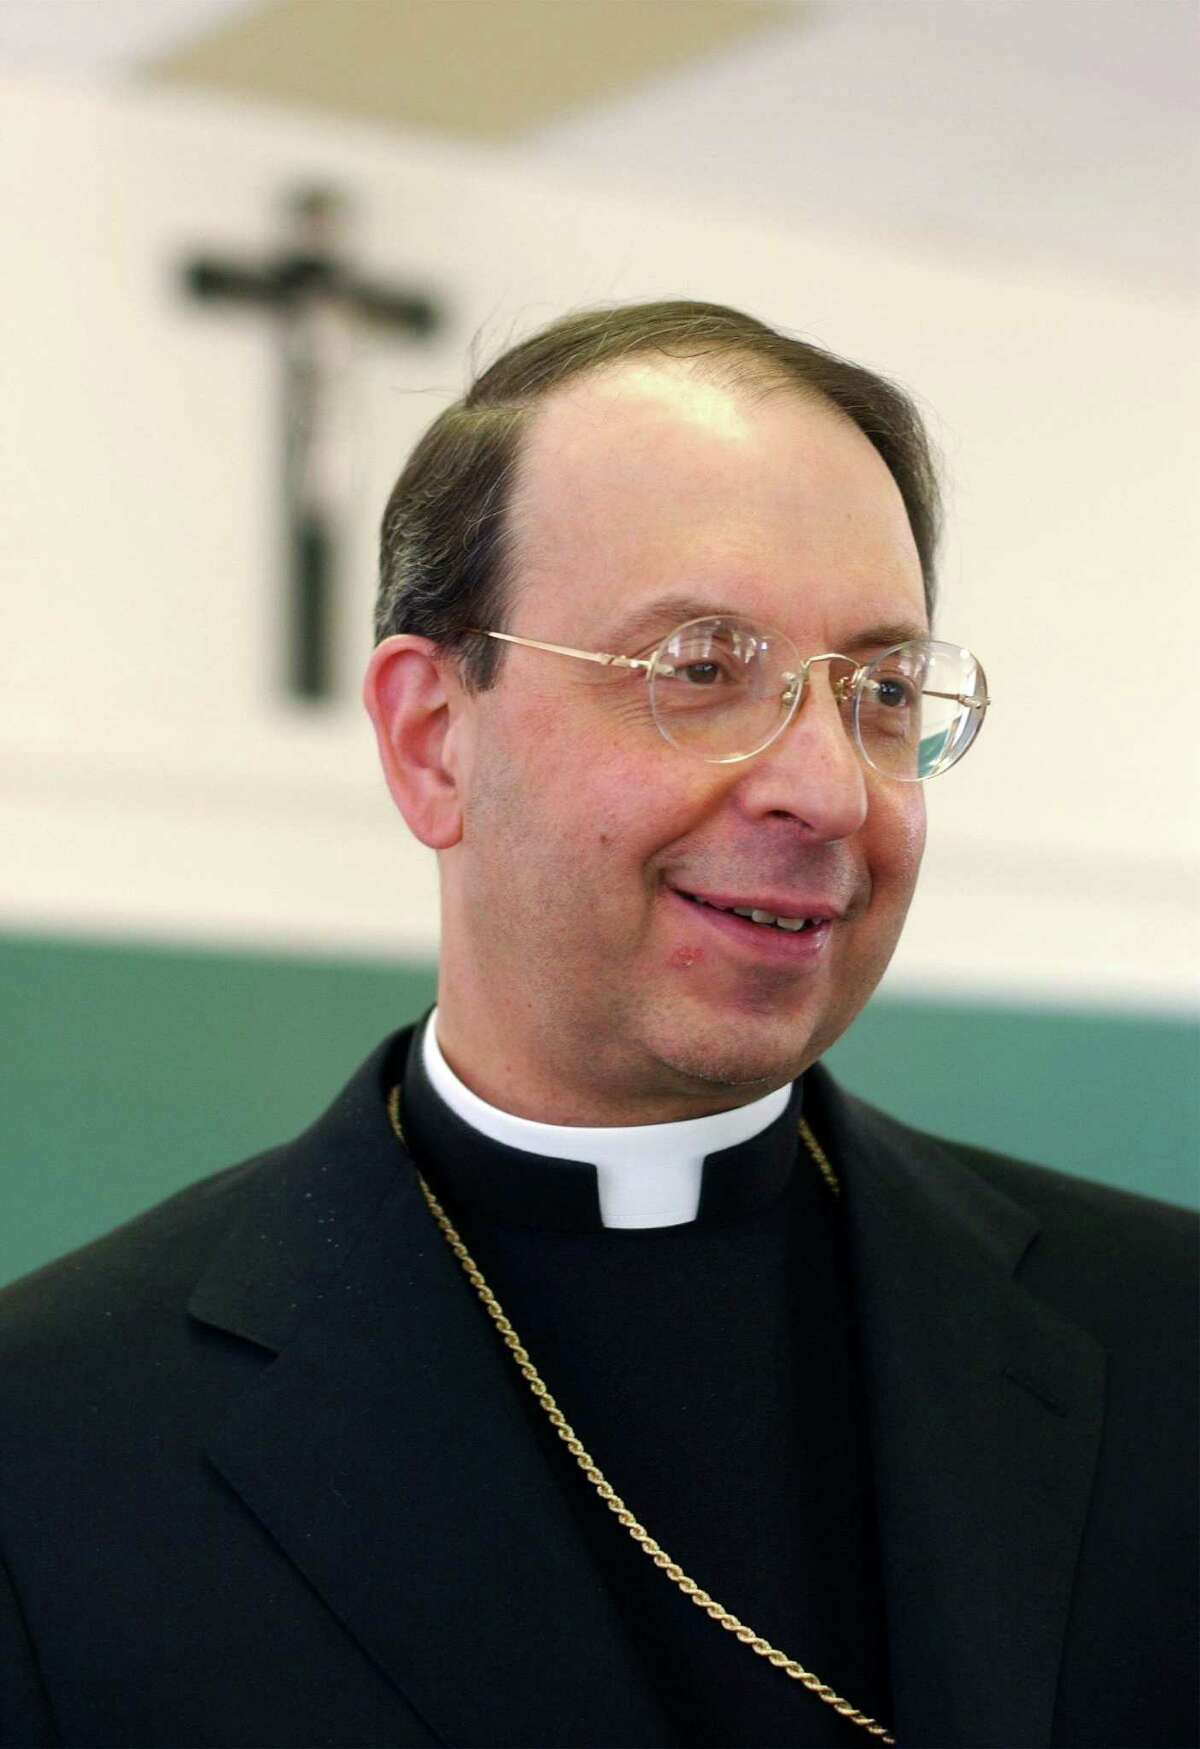 Bishop William Lori was with the Bridgeport Diocese from 2001 until 2012 and archbishop of the Archdiocese of Baltimore, Maryland since 2012.